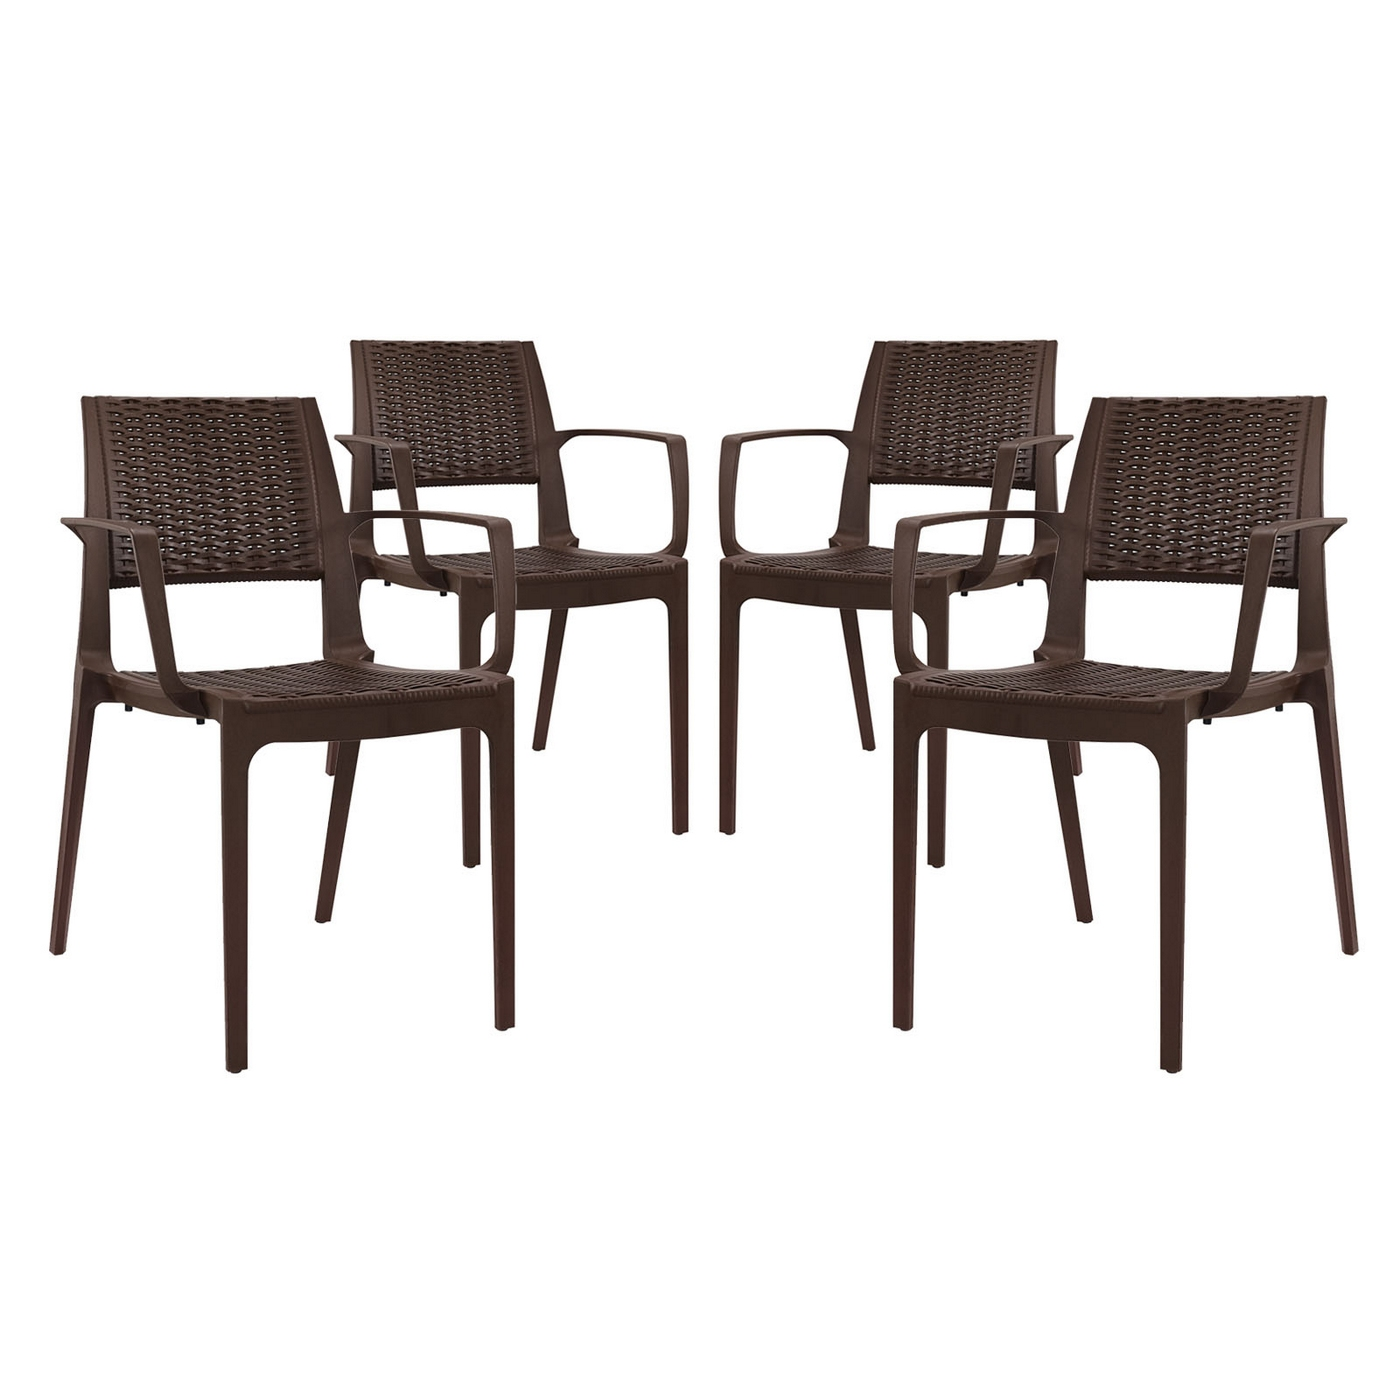 Set Of 4 Astute Durable Criss Cross Patterned Dining